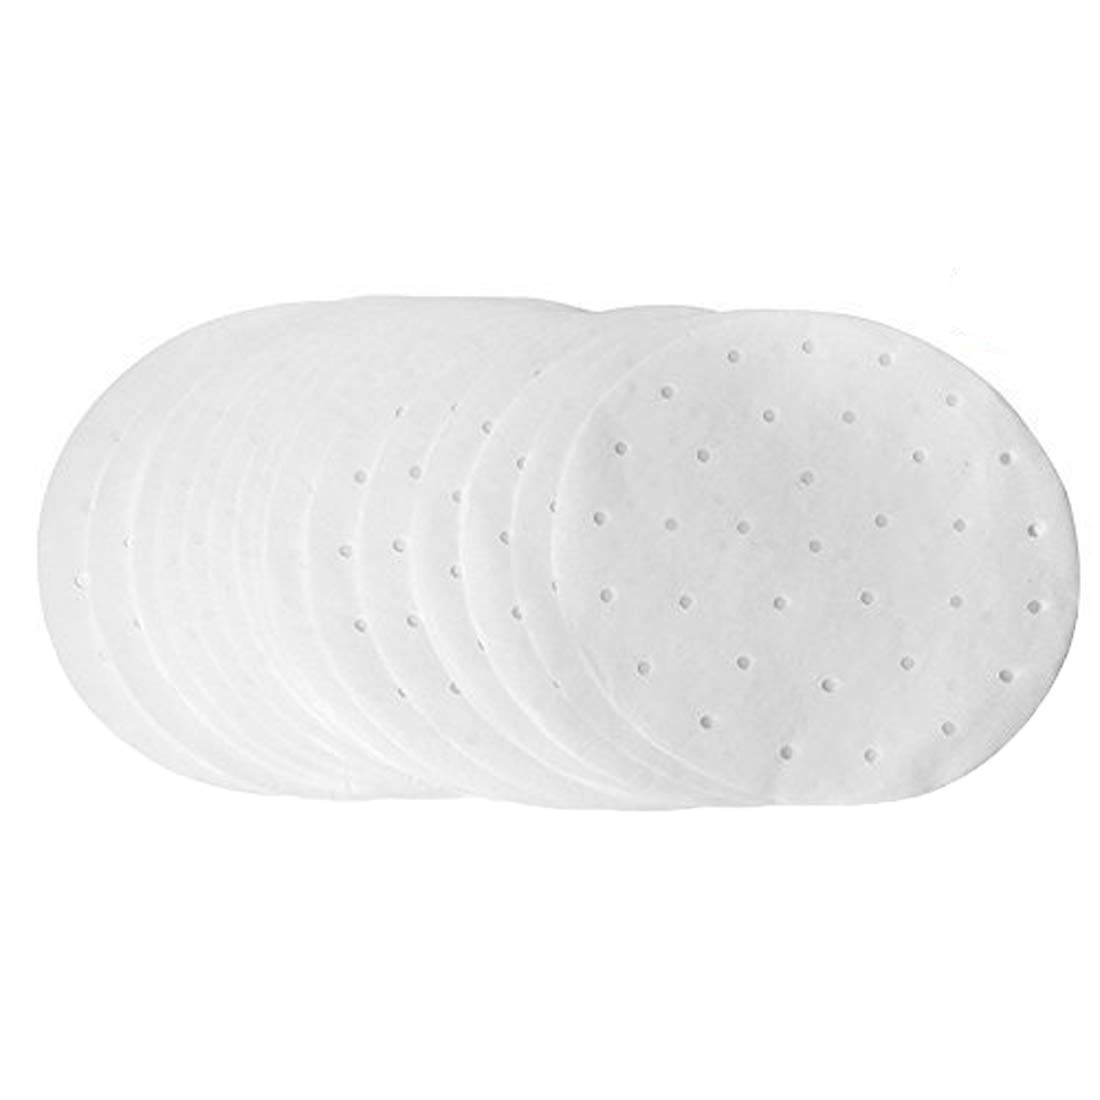 (Set of 200) Perforated Parchment Round Bamboo Steamer Paper Liners,LQQDD 9 Inch Non-stick Steaming Papers for Air Fryer,Cooking, Steaming Basket, Vegetables, Dim Sum,Rice